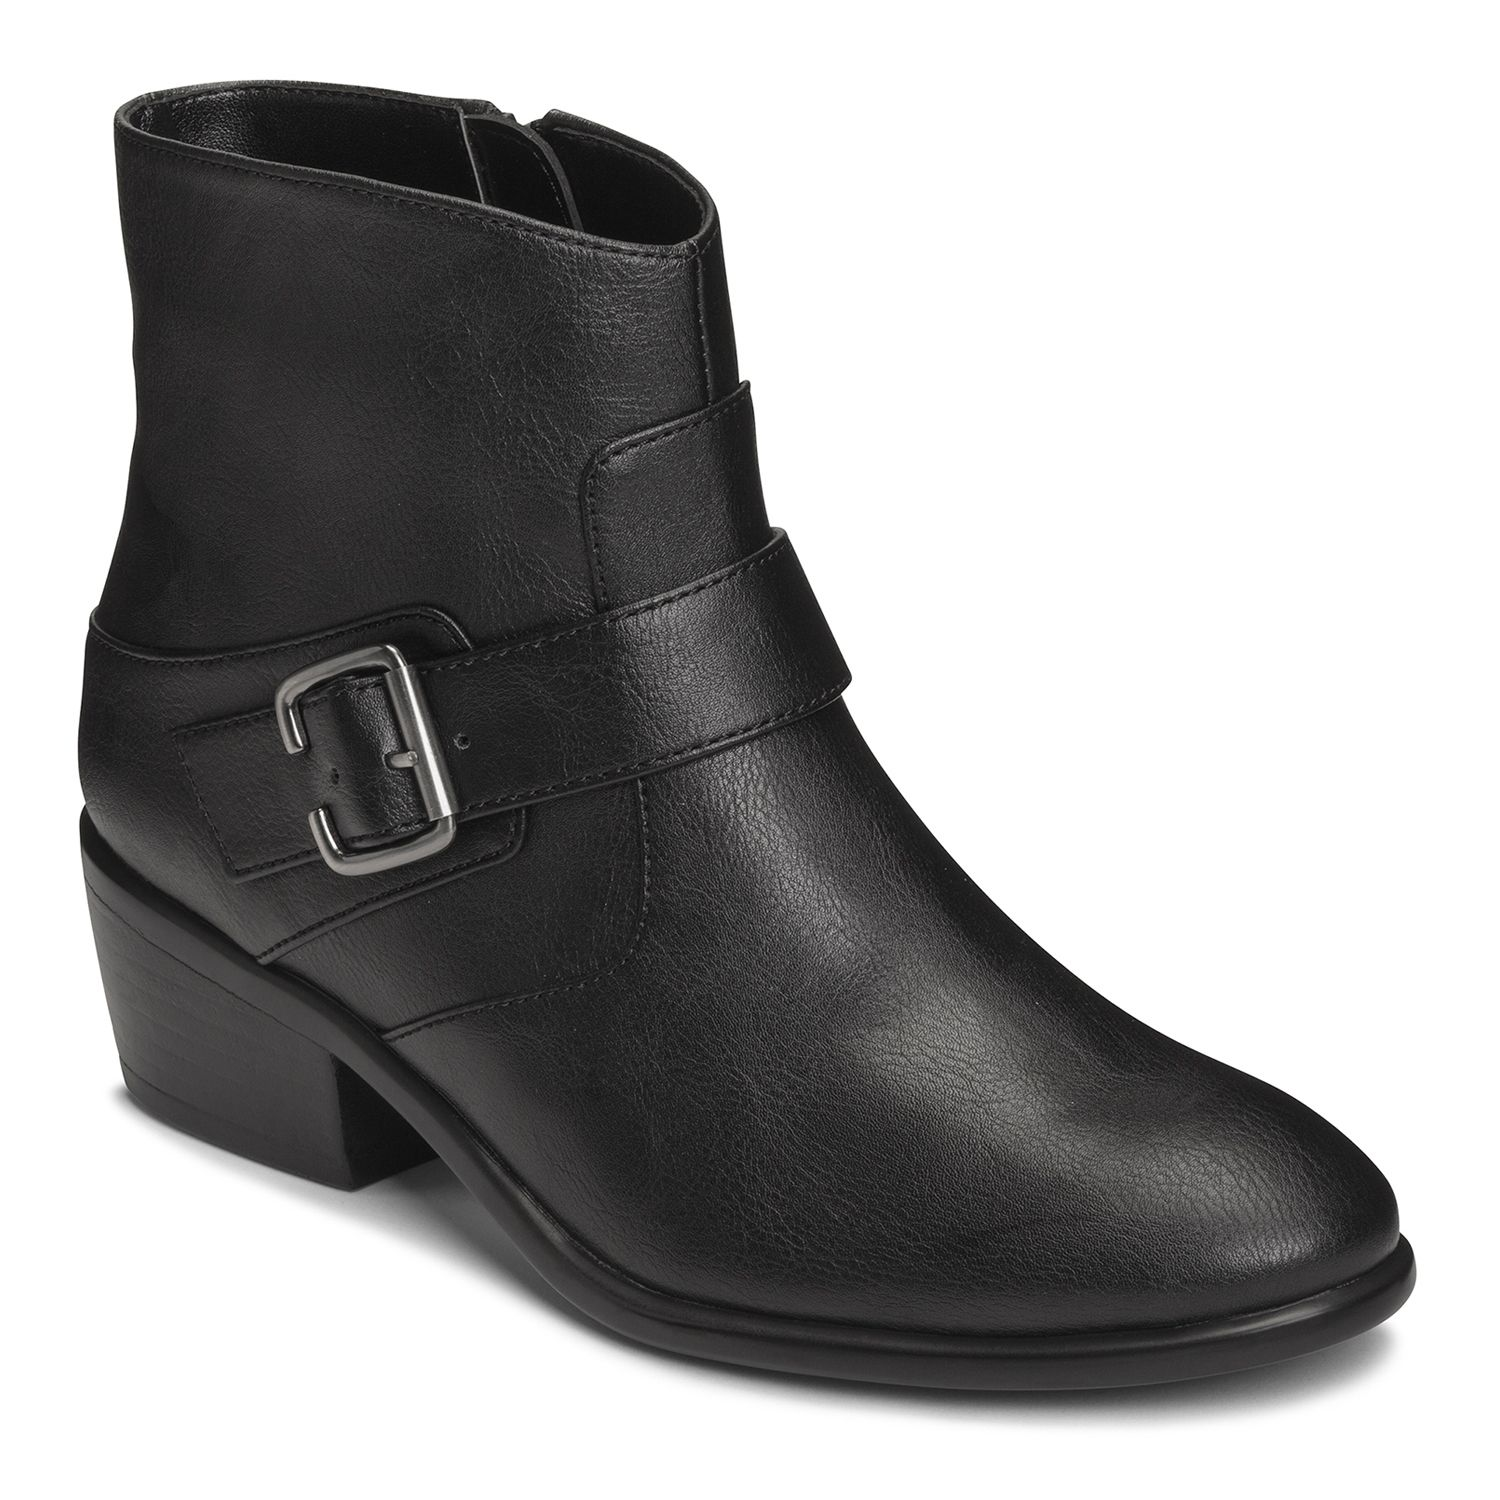 Womens Boots Ankle